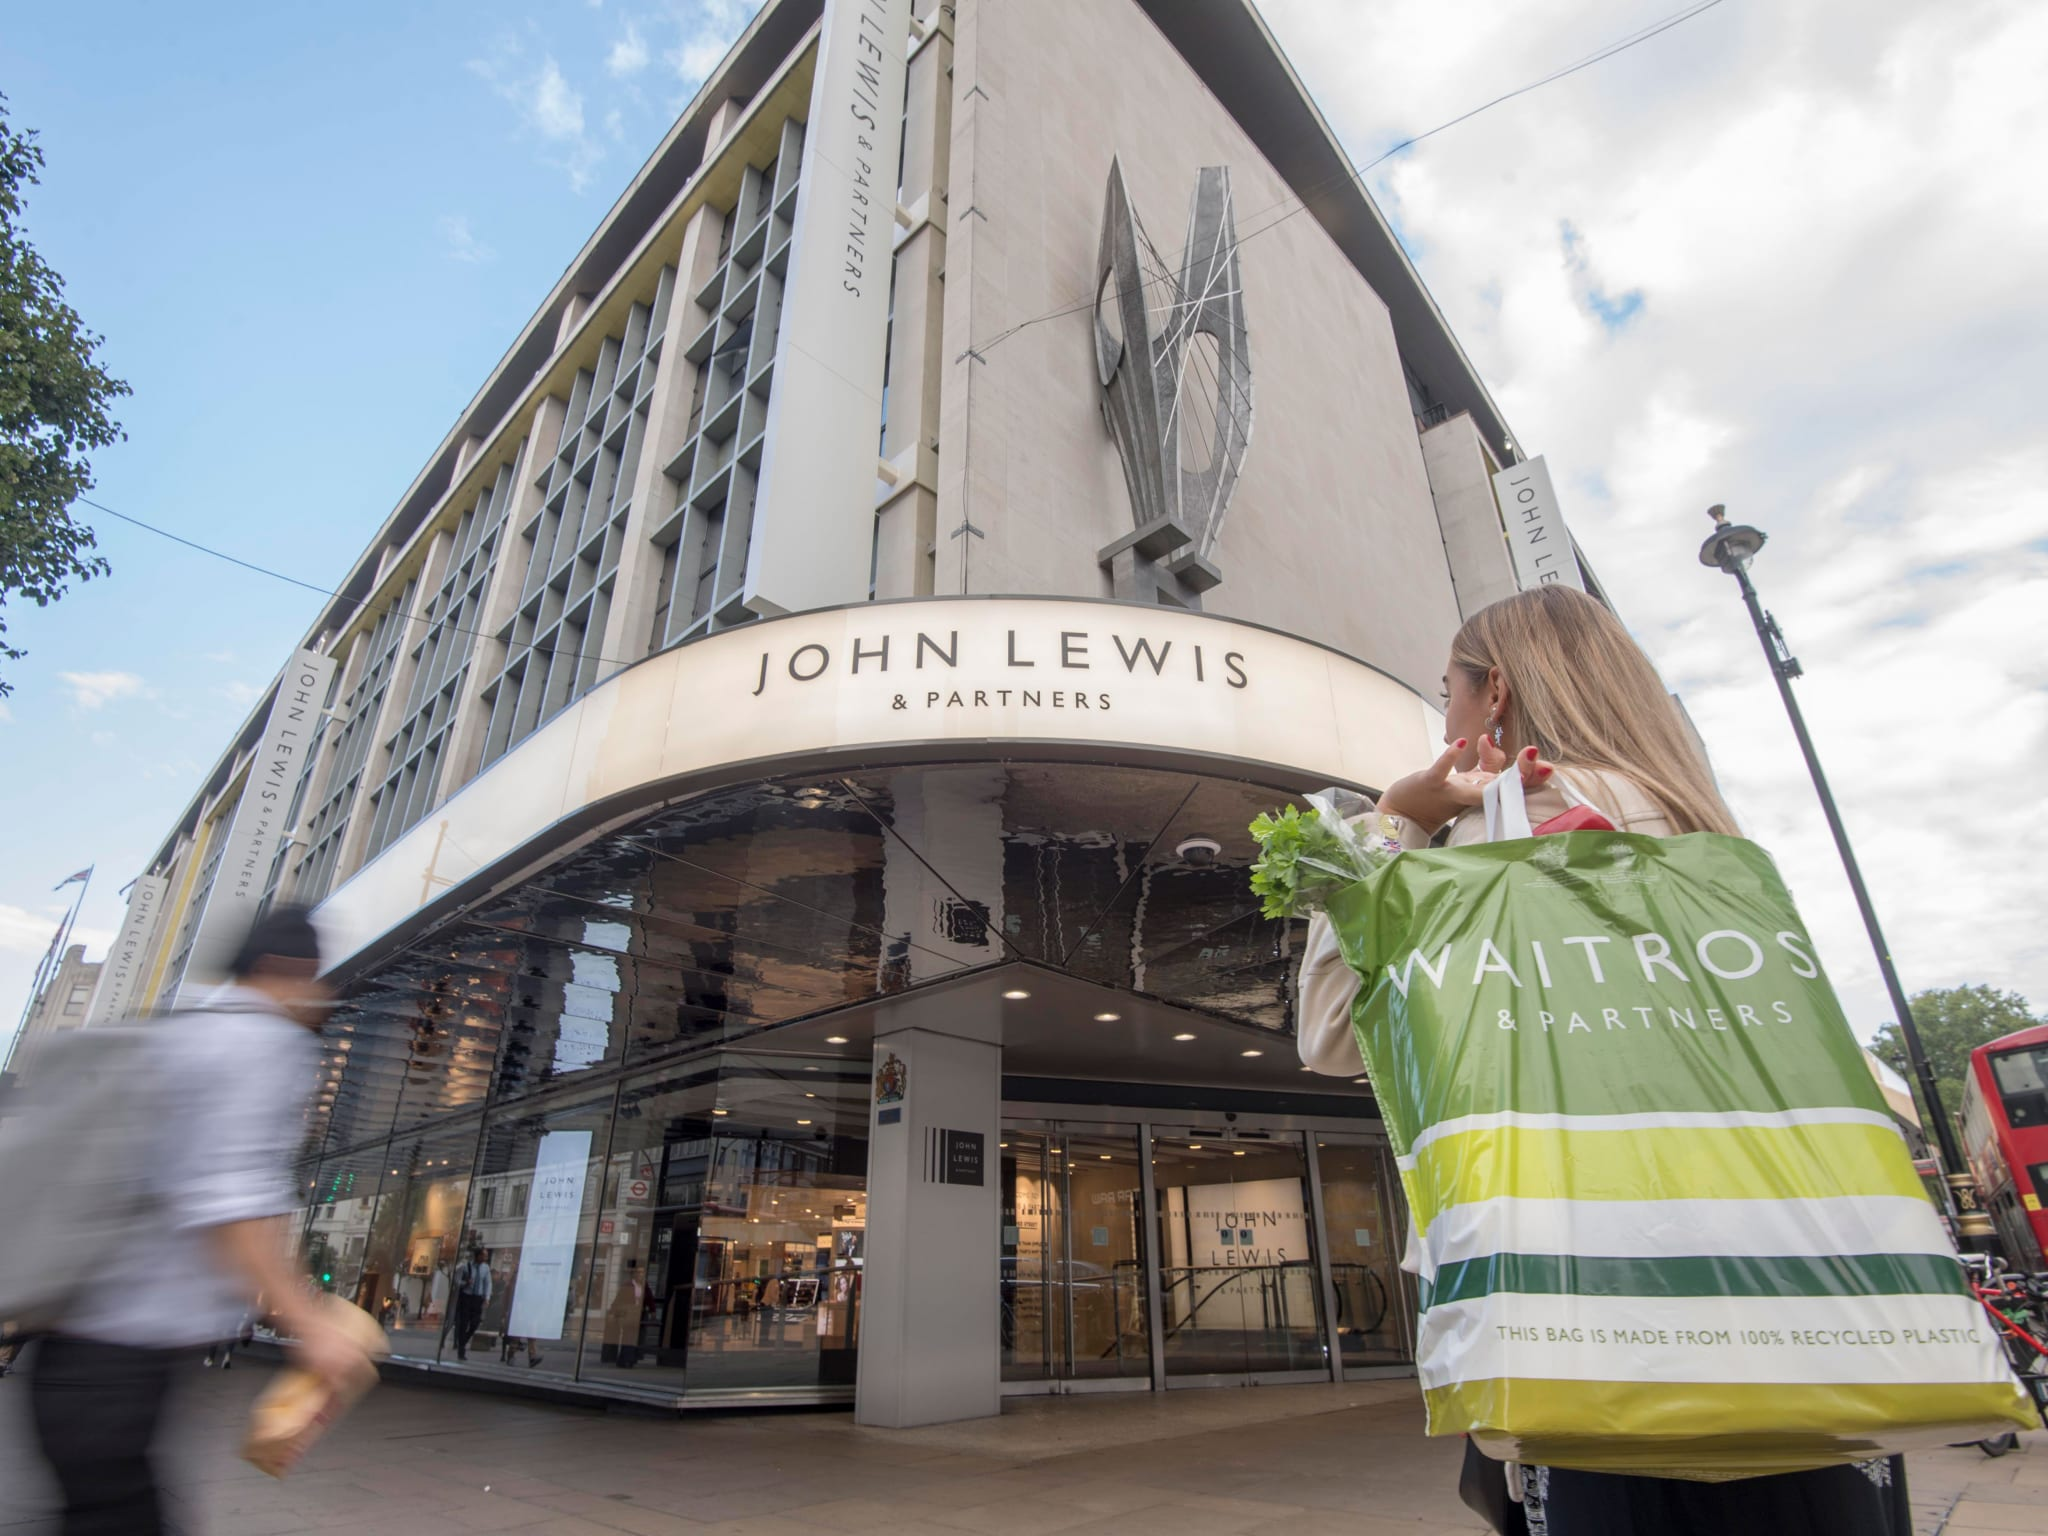 John-Lewis-and-Partners-Oxford-Street1